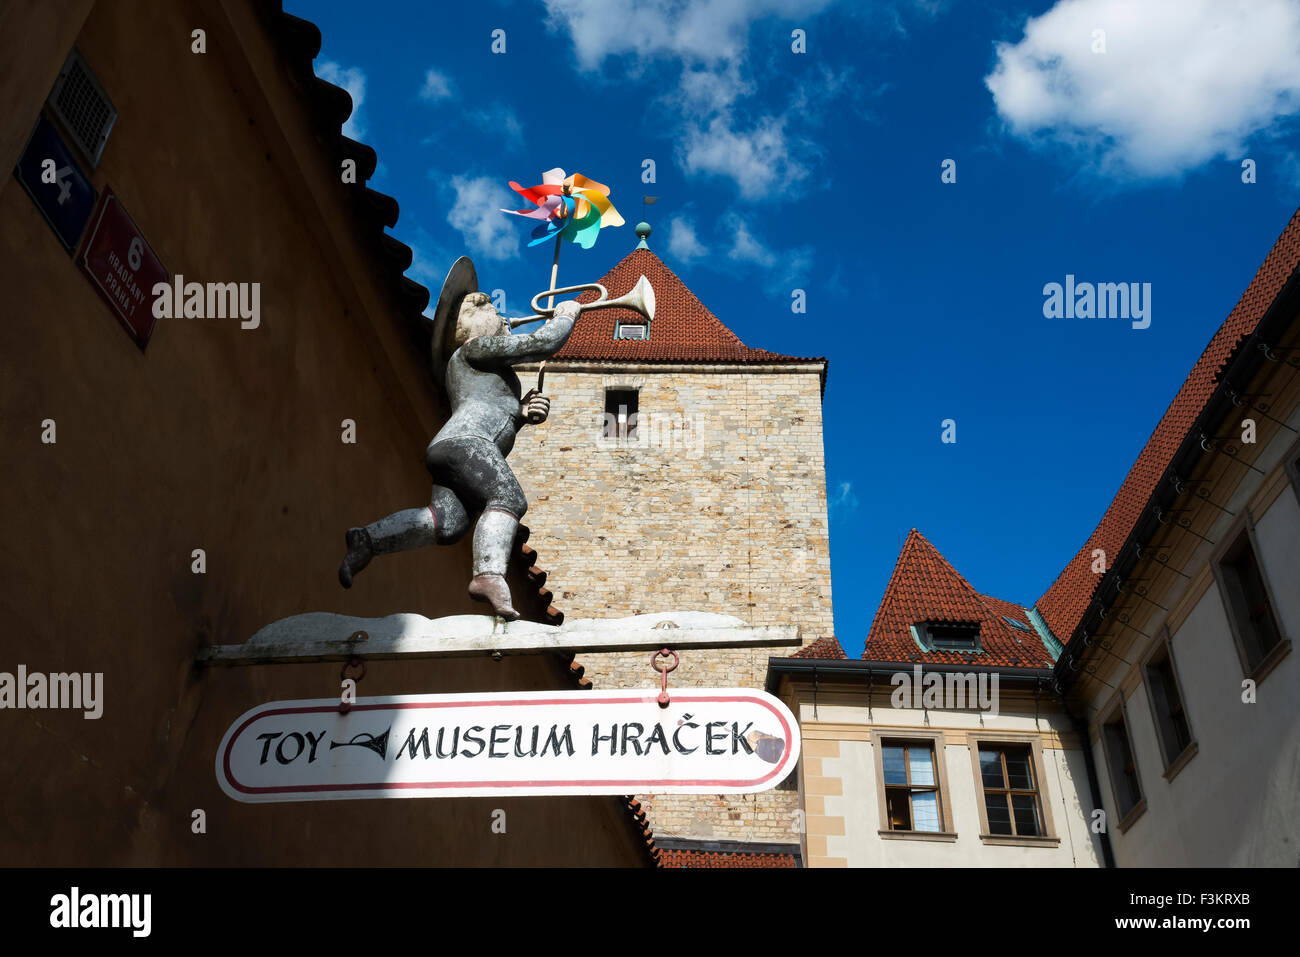 Toy Museum at Prague Castle, Czech republic - Stock Image